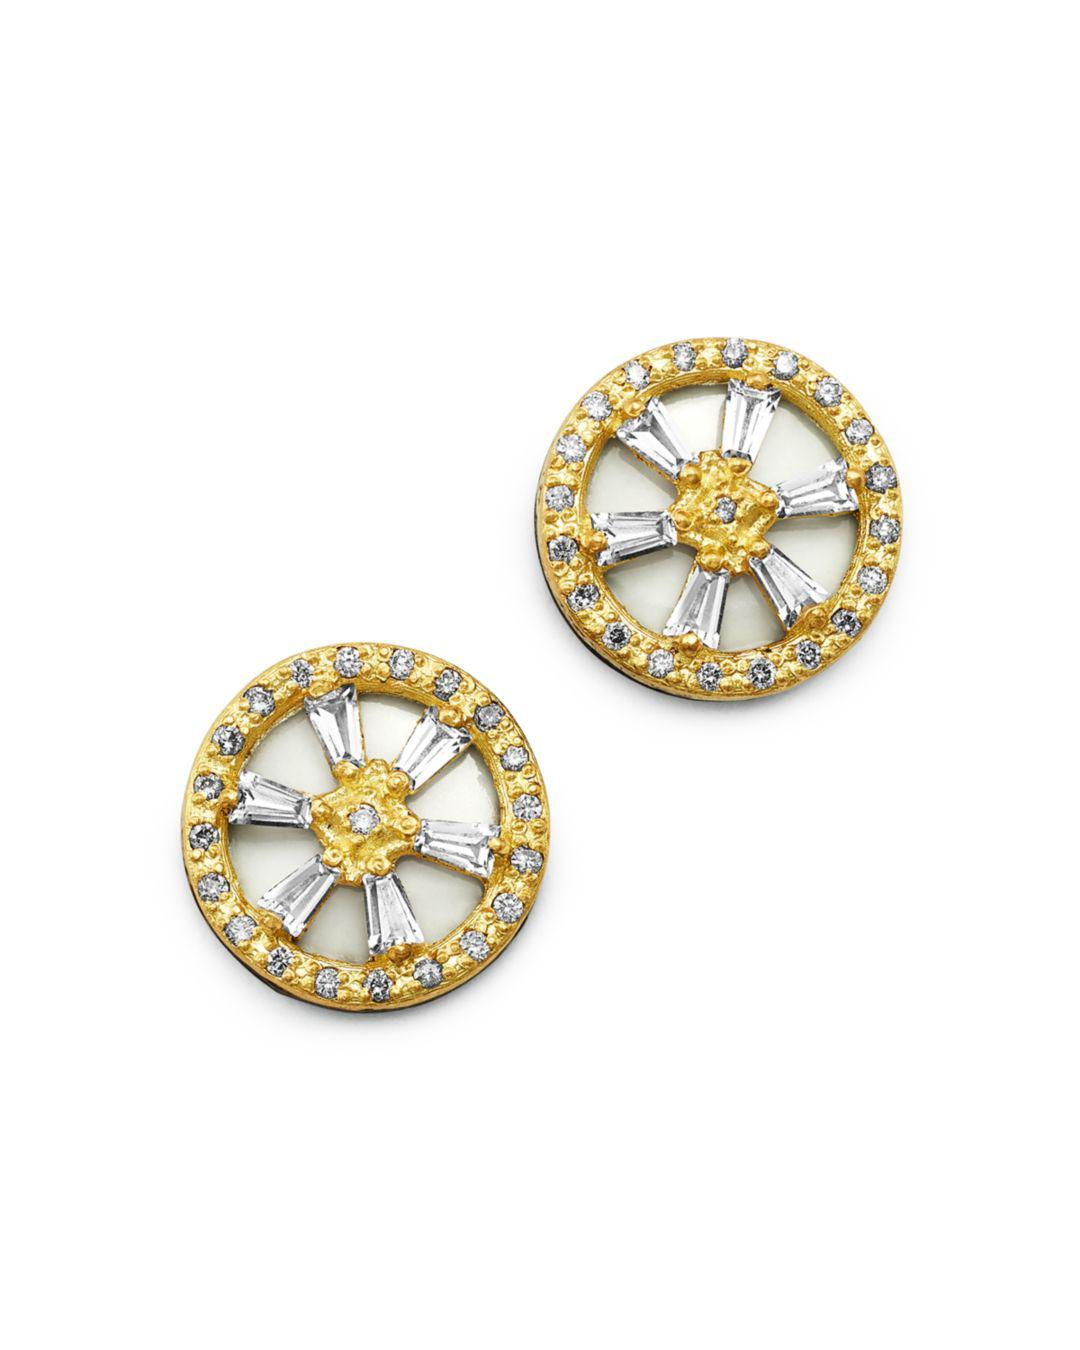 Armenta Women S Metallic 18k Yellow Gold Blackened Sterling Silver Old World Crivelli White Shire Champagne Diamond Stud Earrings